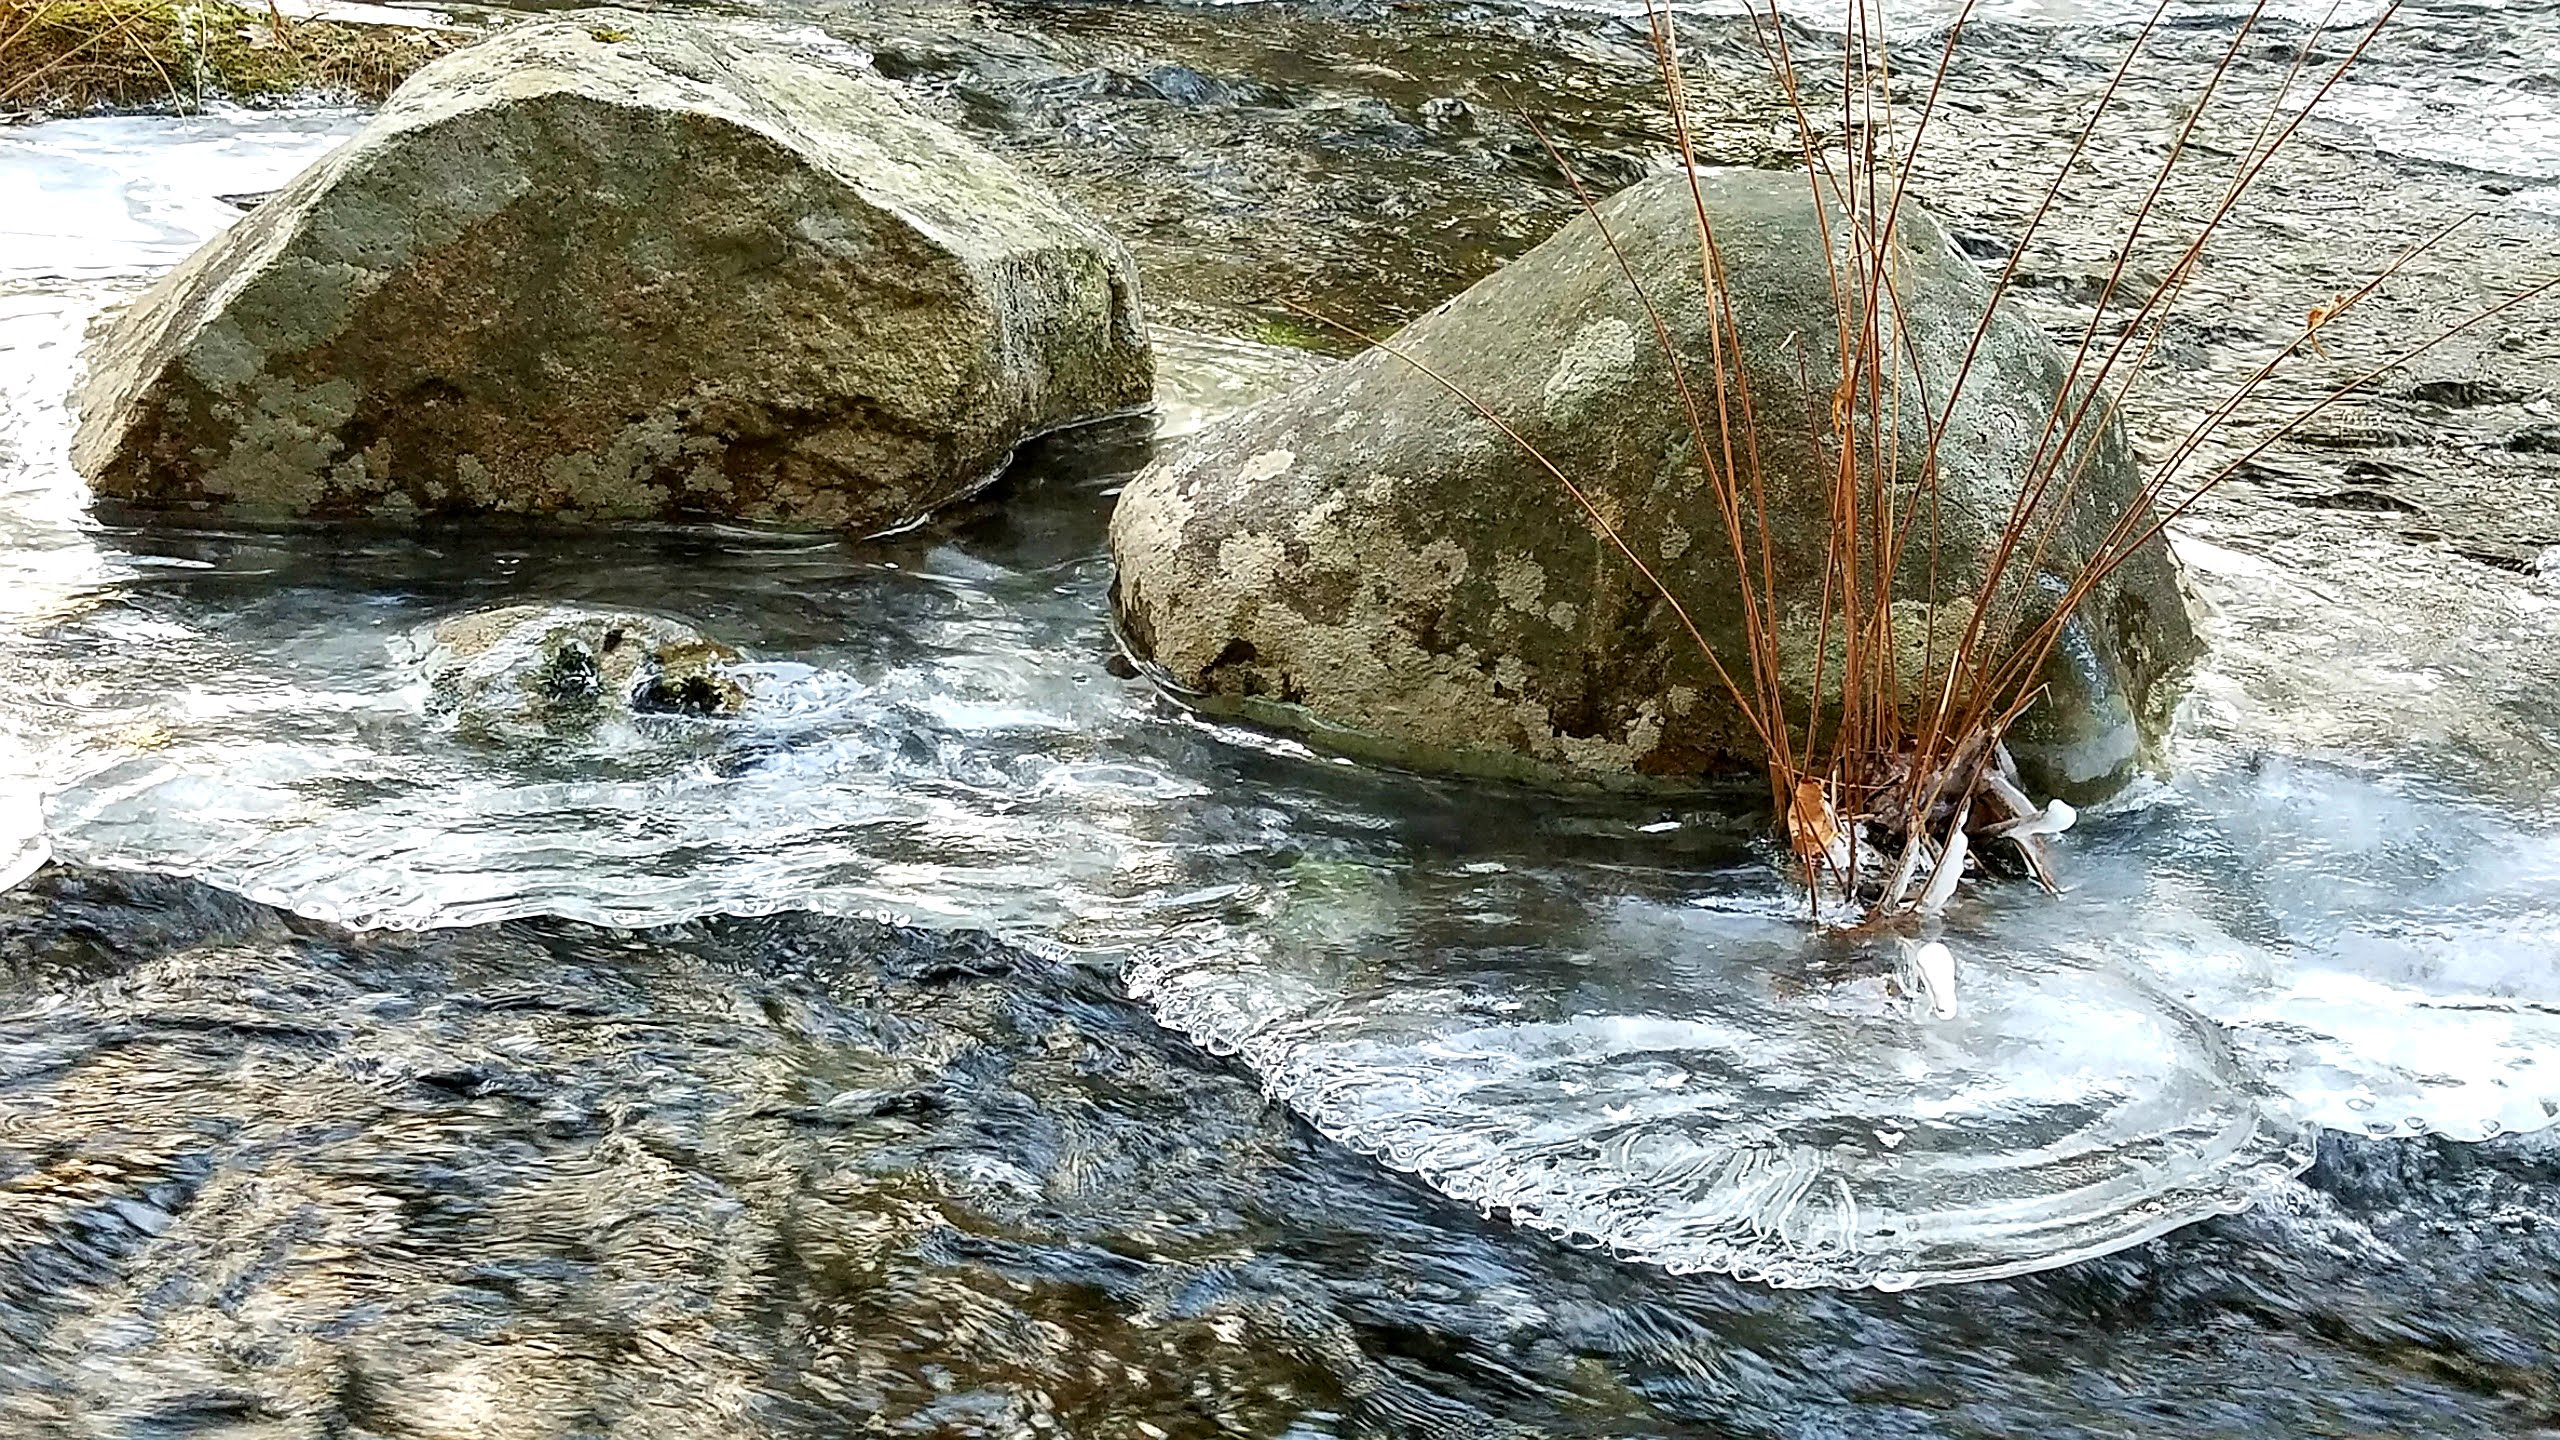 20190115_2-boulders-with-ice-island-in-stream-scenic